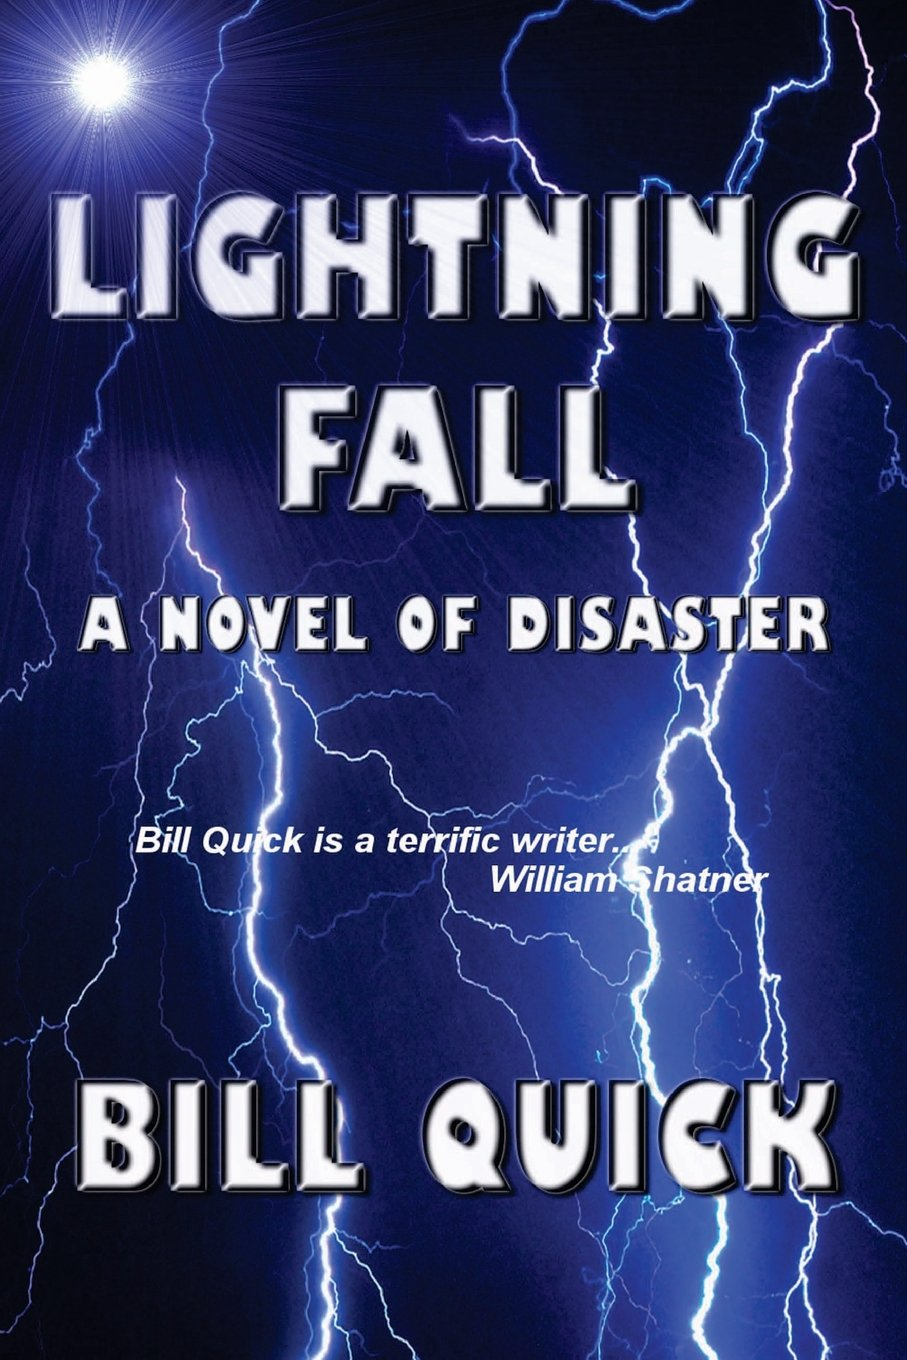 Lightning Fall: A Novel of Disaster PDF